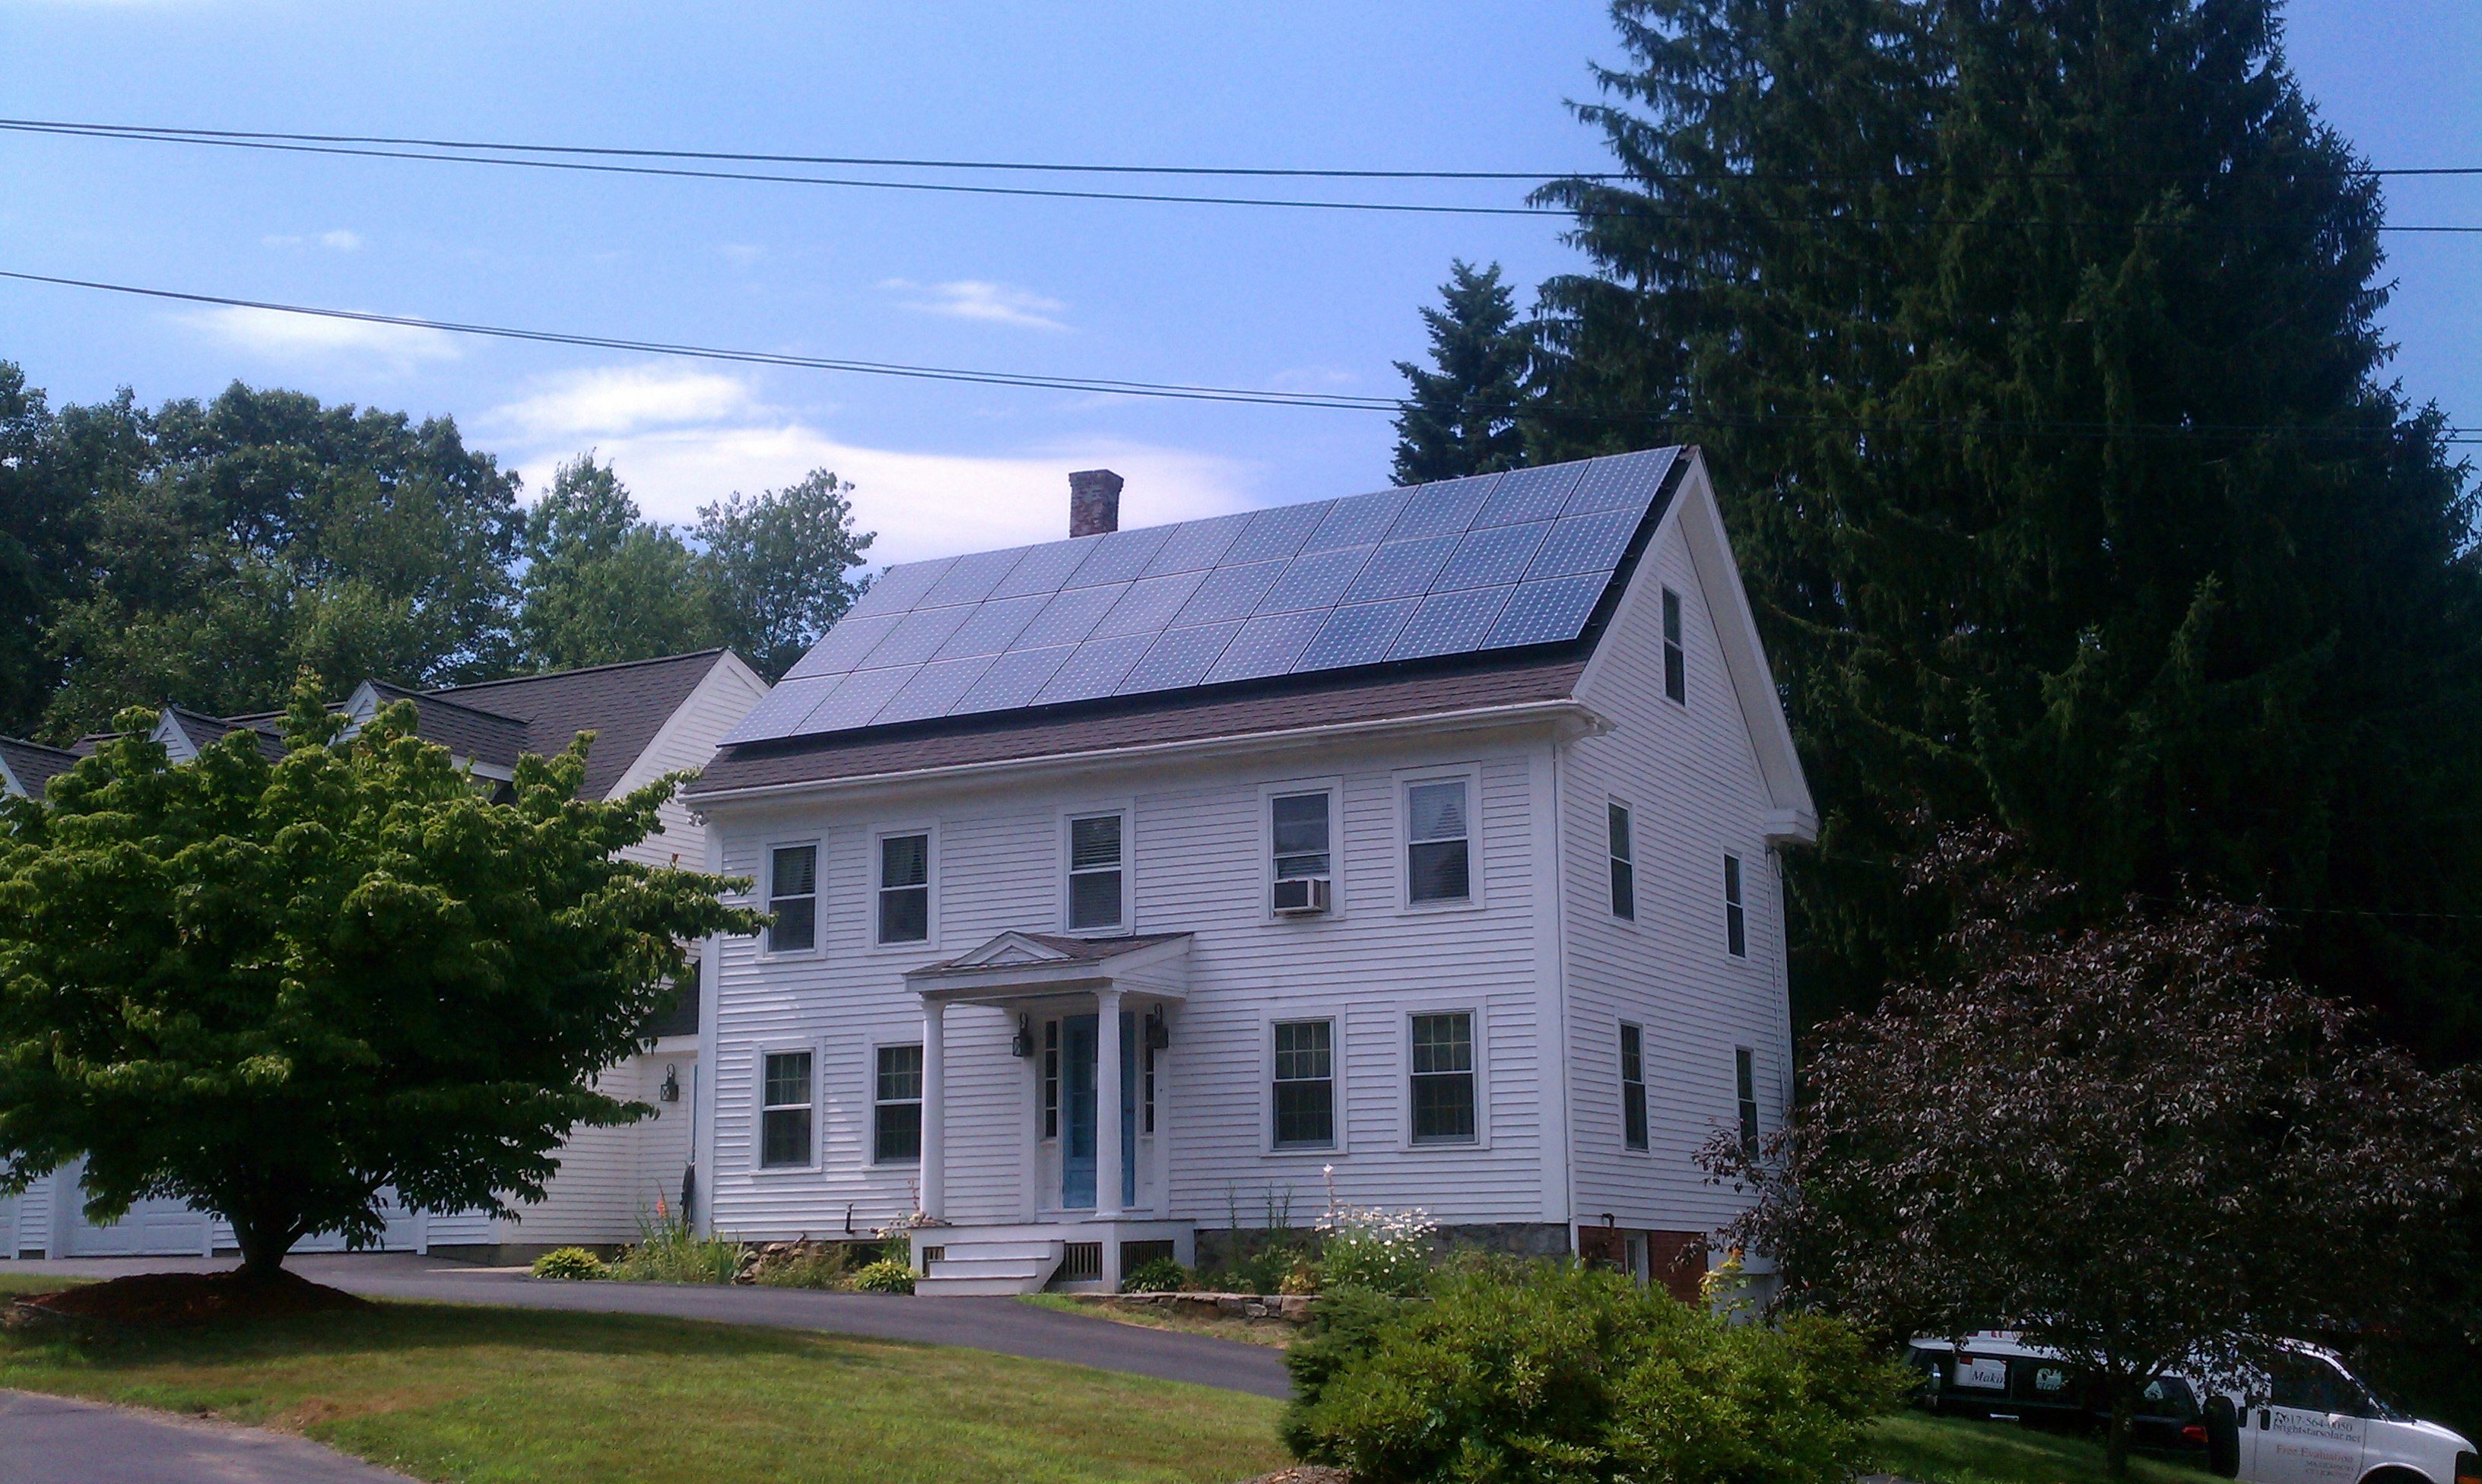 brightstar solar our 5 favorite towns to install solar panels